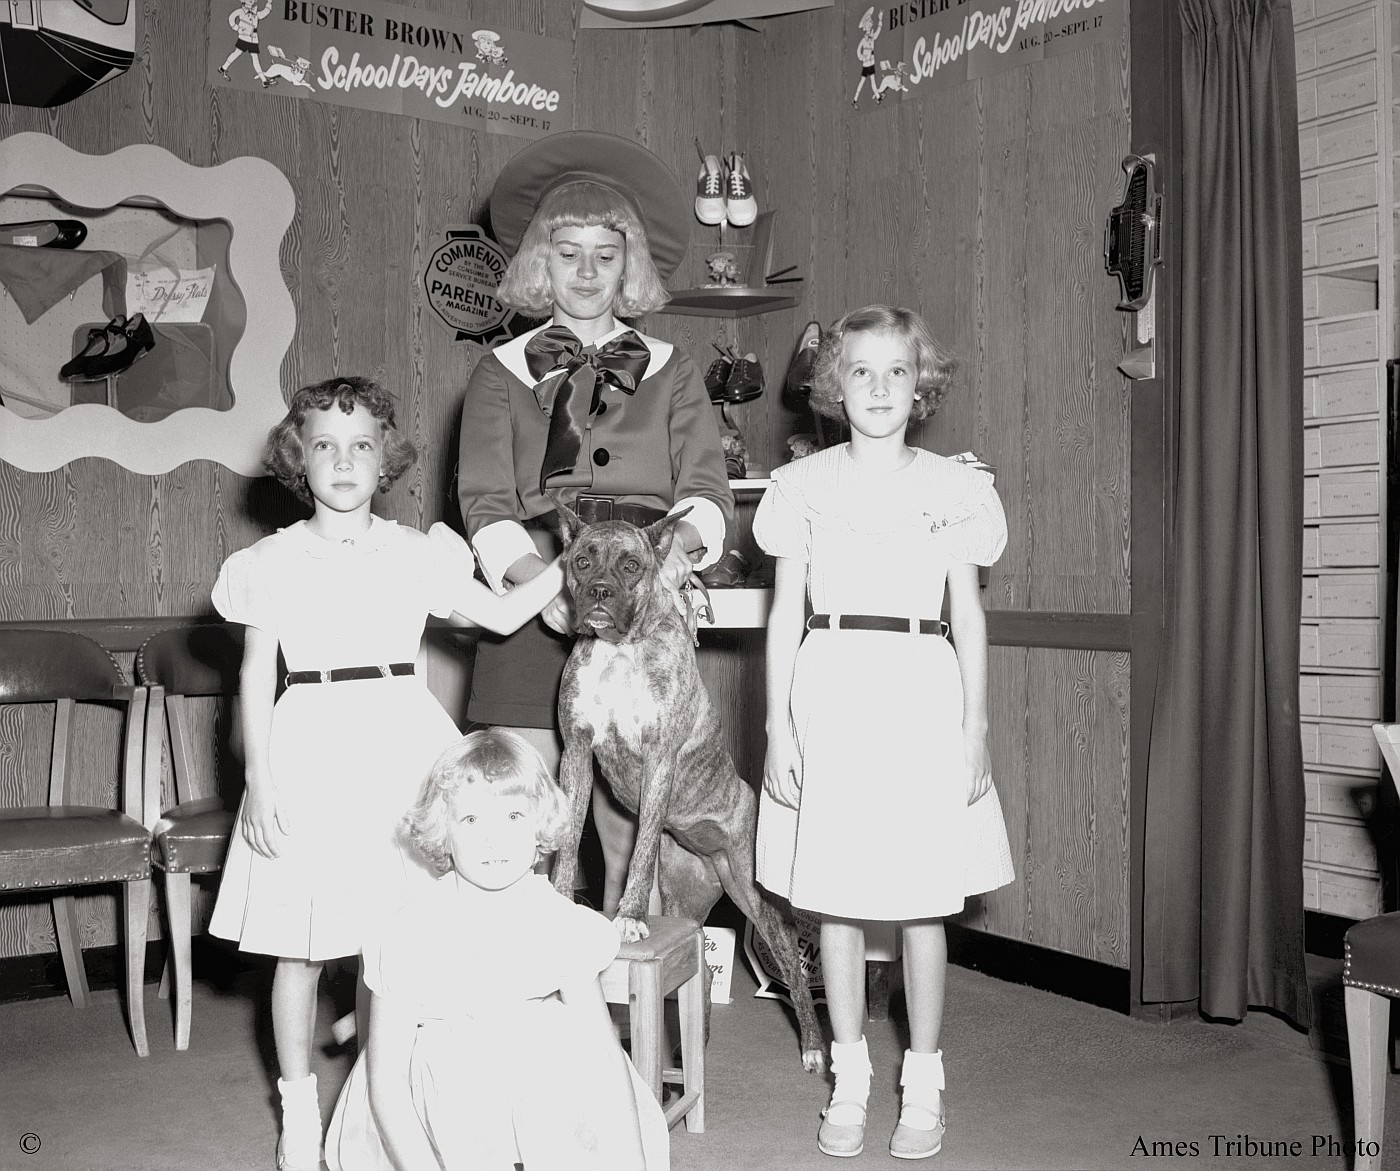 Children appear with Buster Brown at shoe store